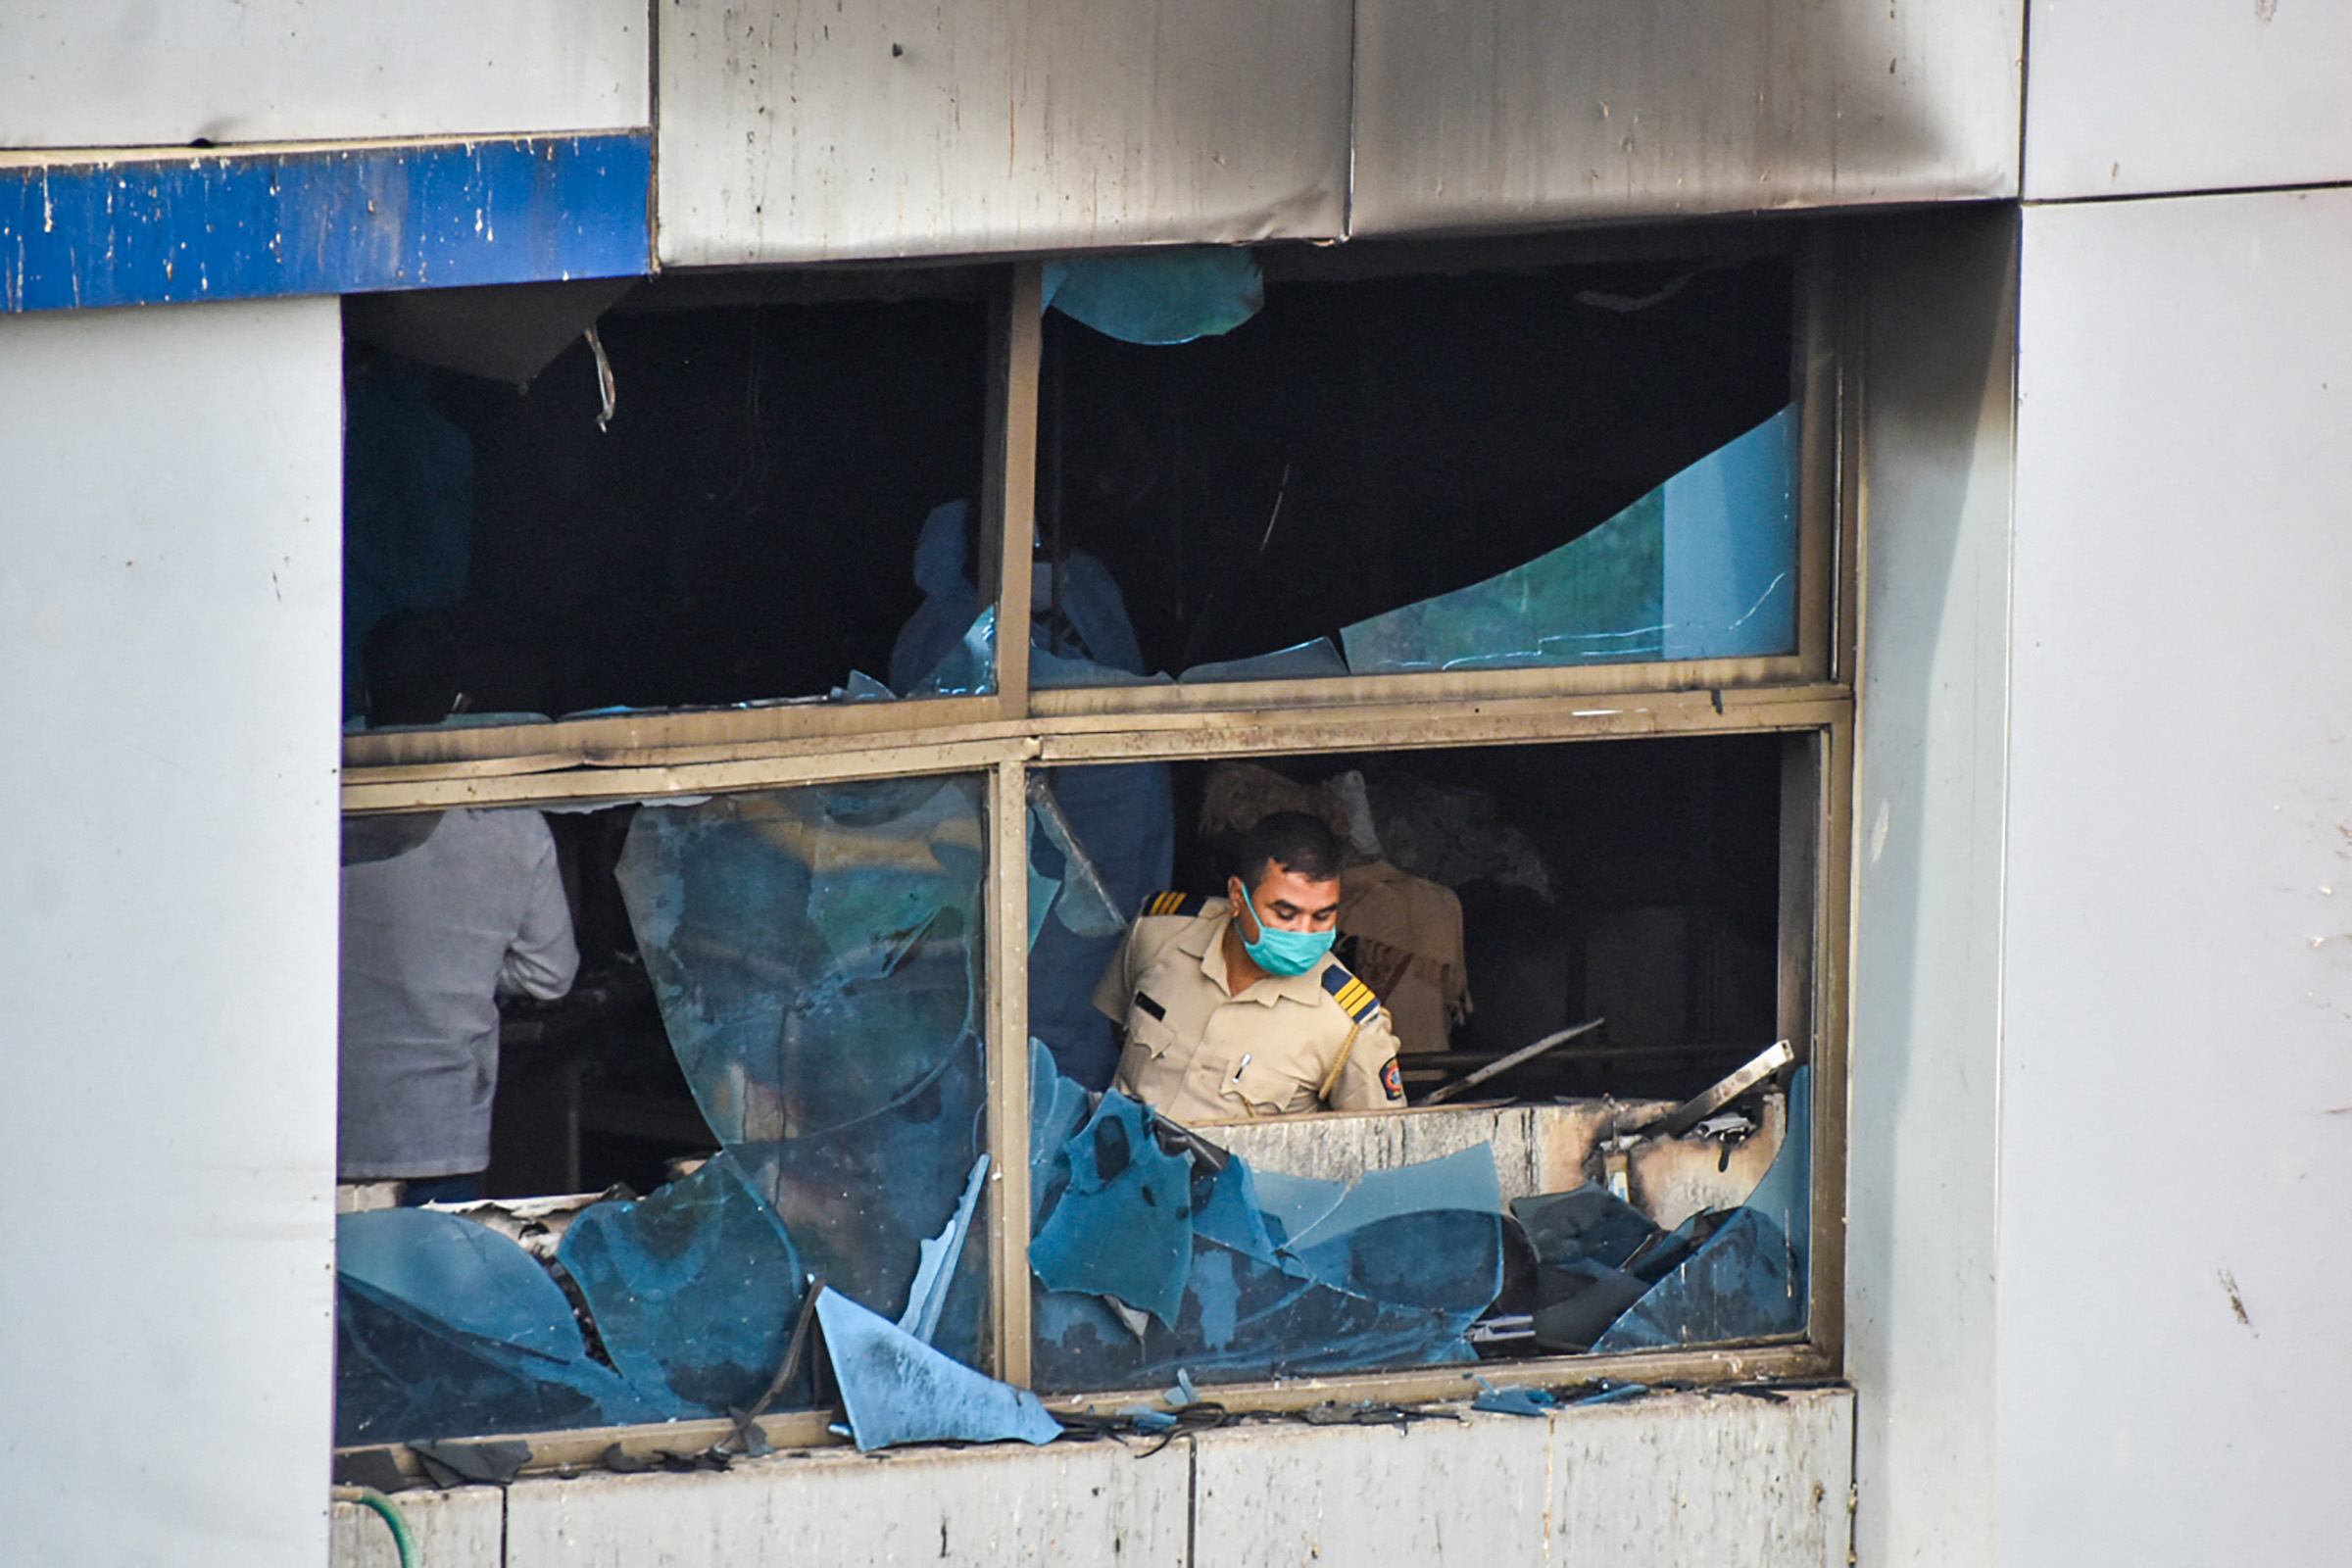 A policeman inspects a burnt-out room at the Vijay Vallabh Hospital in Virar, on the outskirts of Mumbai, after a fire broke out in the hospital's ICU, on Friday, April 23.